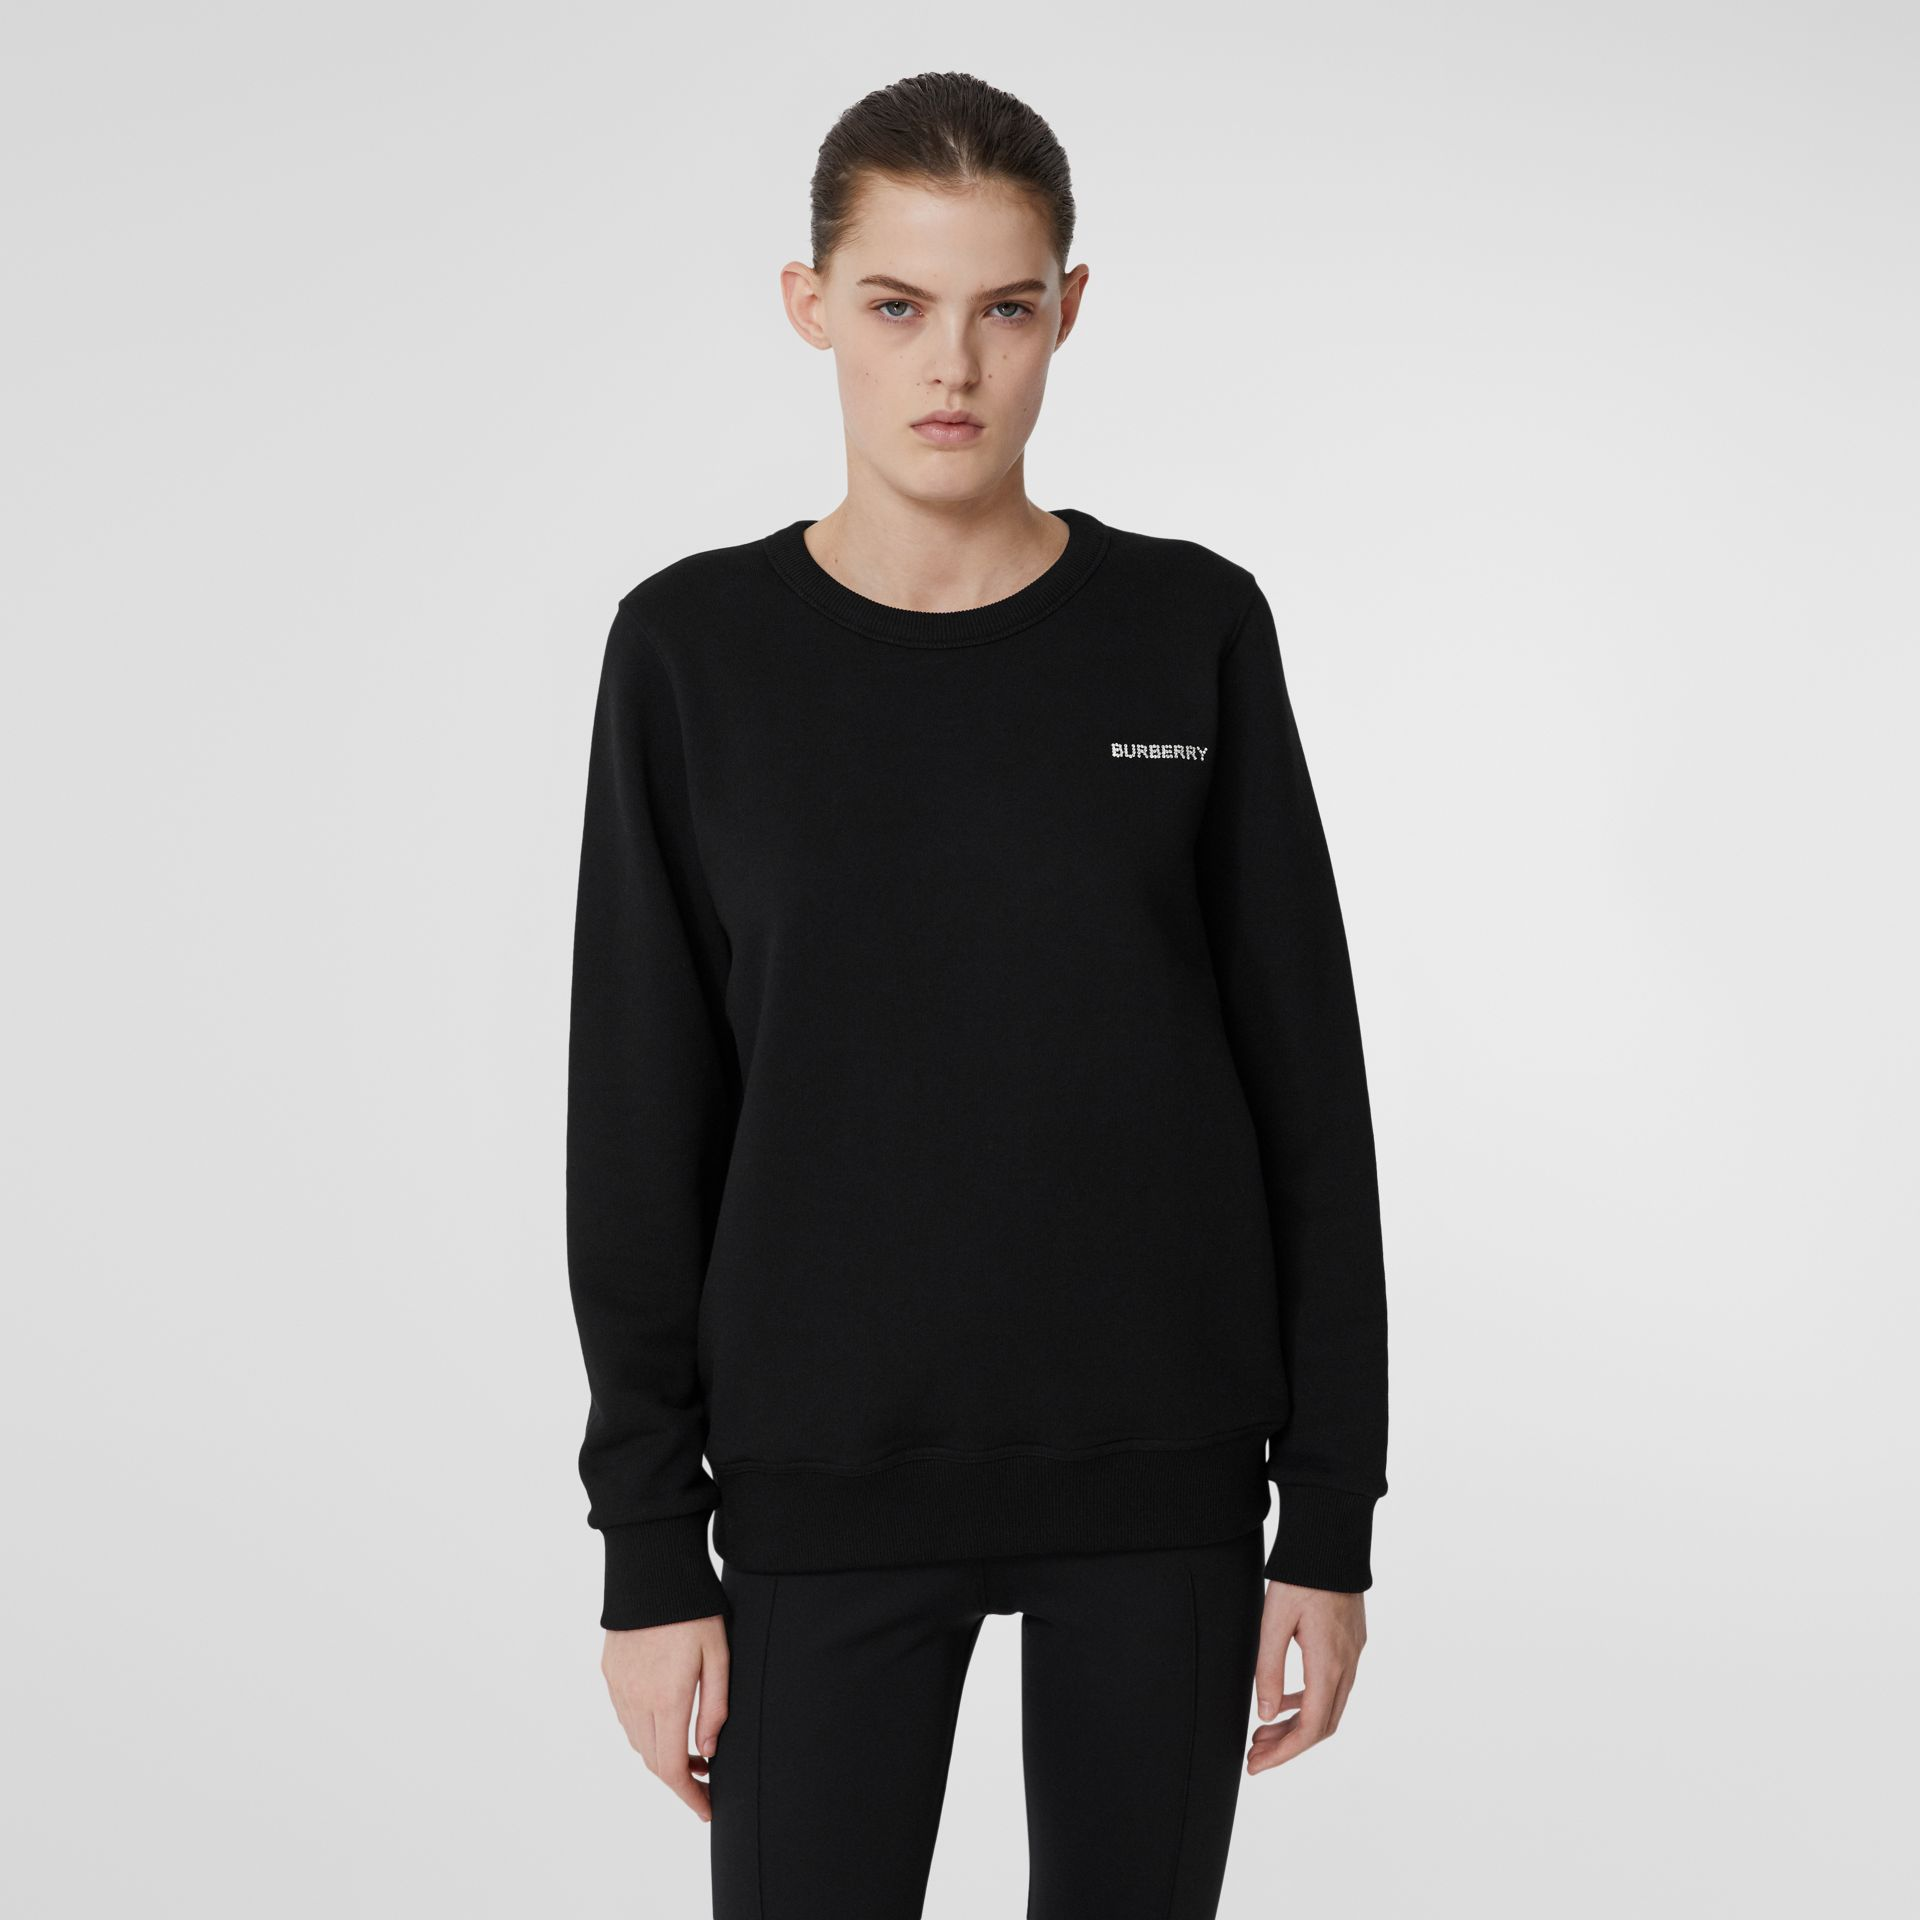 Crystal Monogram Motif Cotton Oversized Sweatshirt in Black - Women | Burberry - gallery image 2